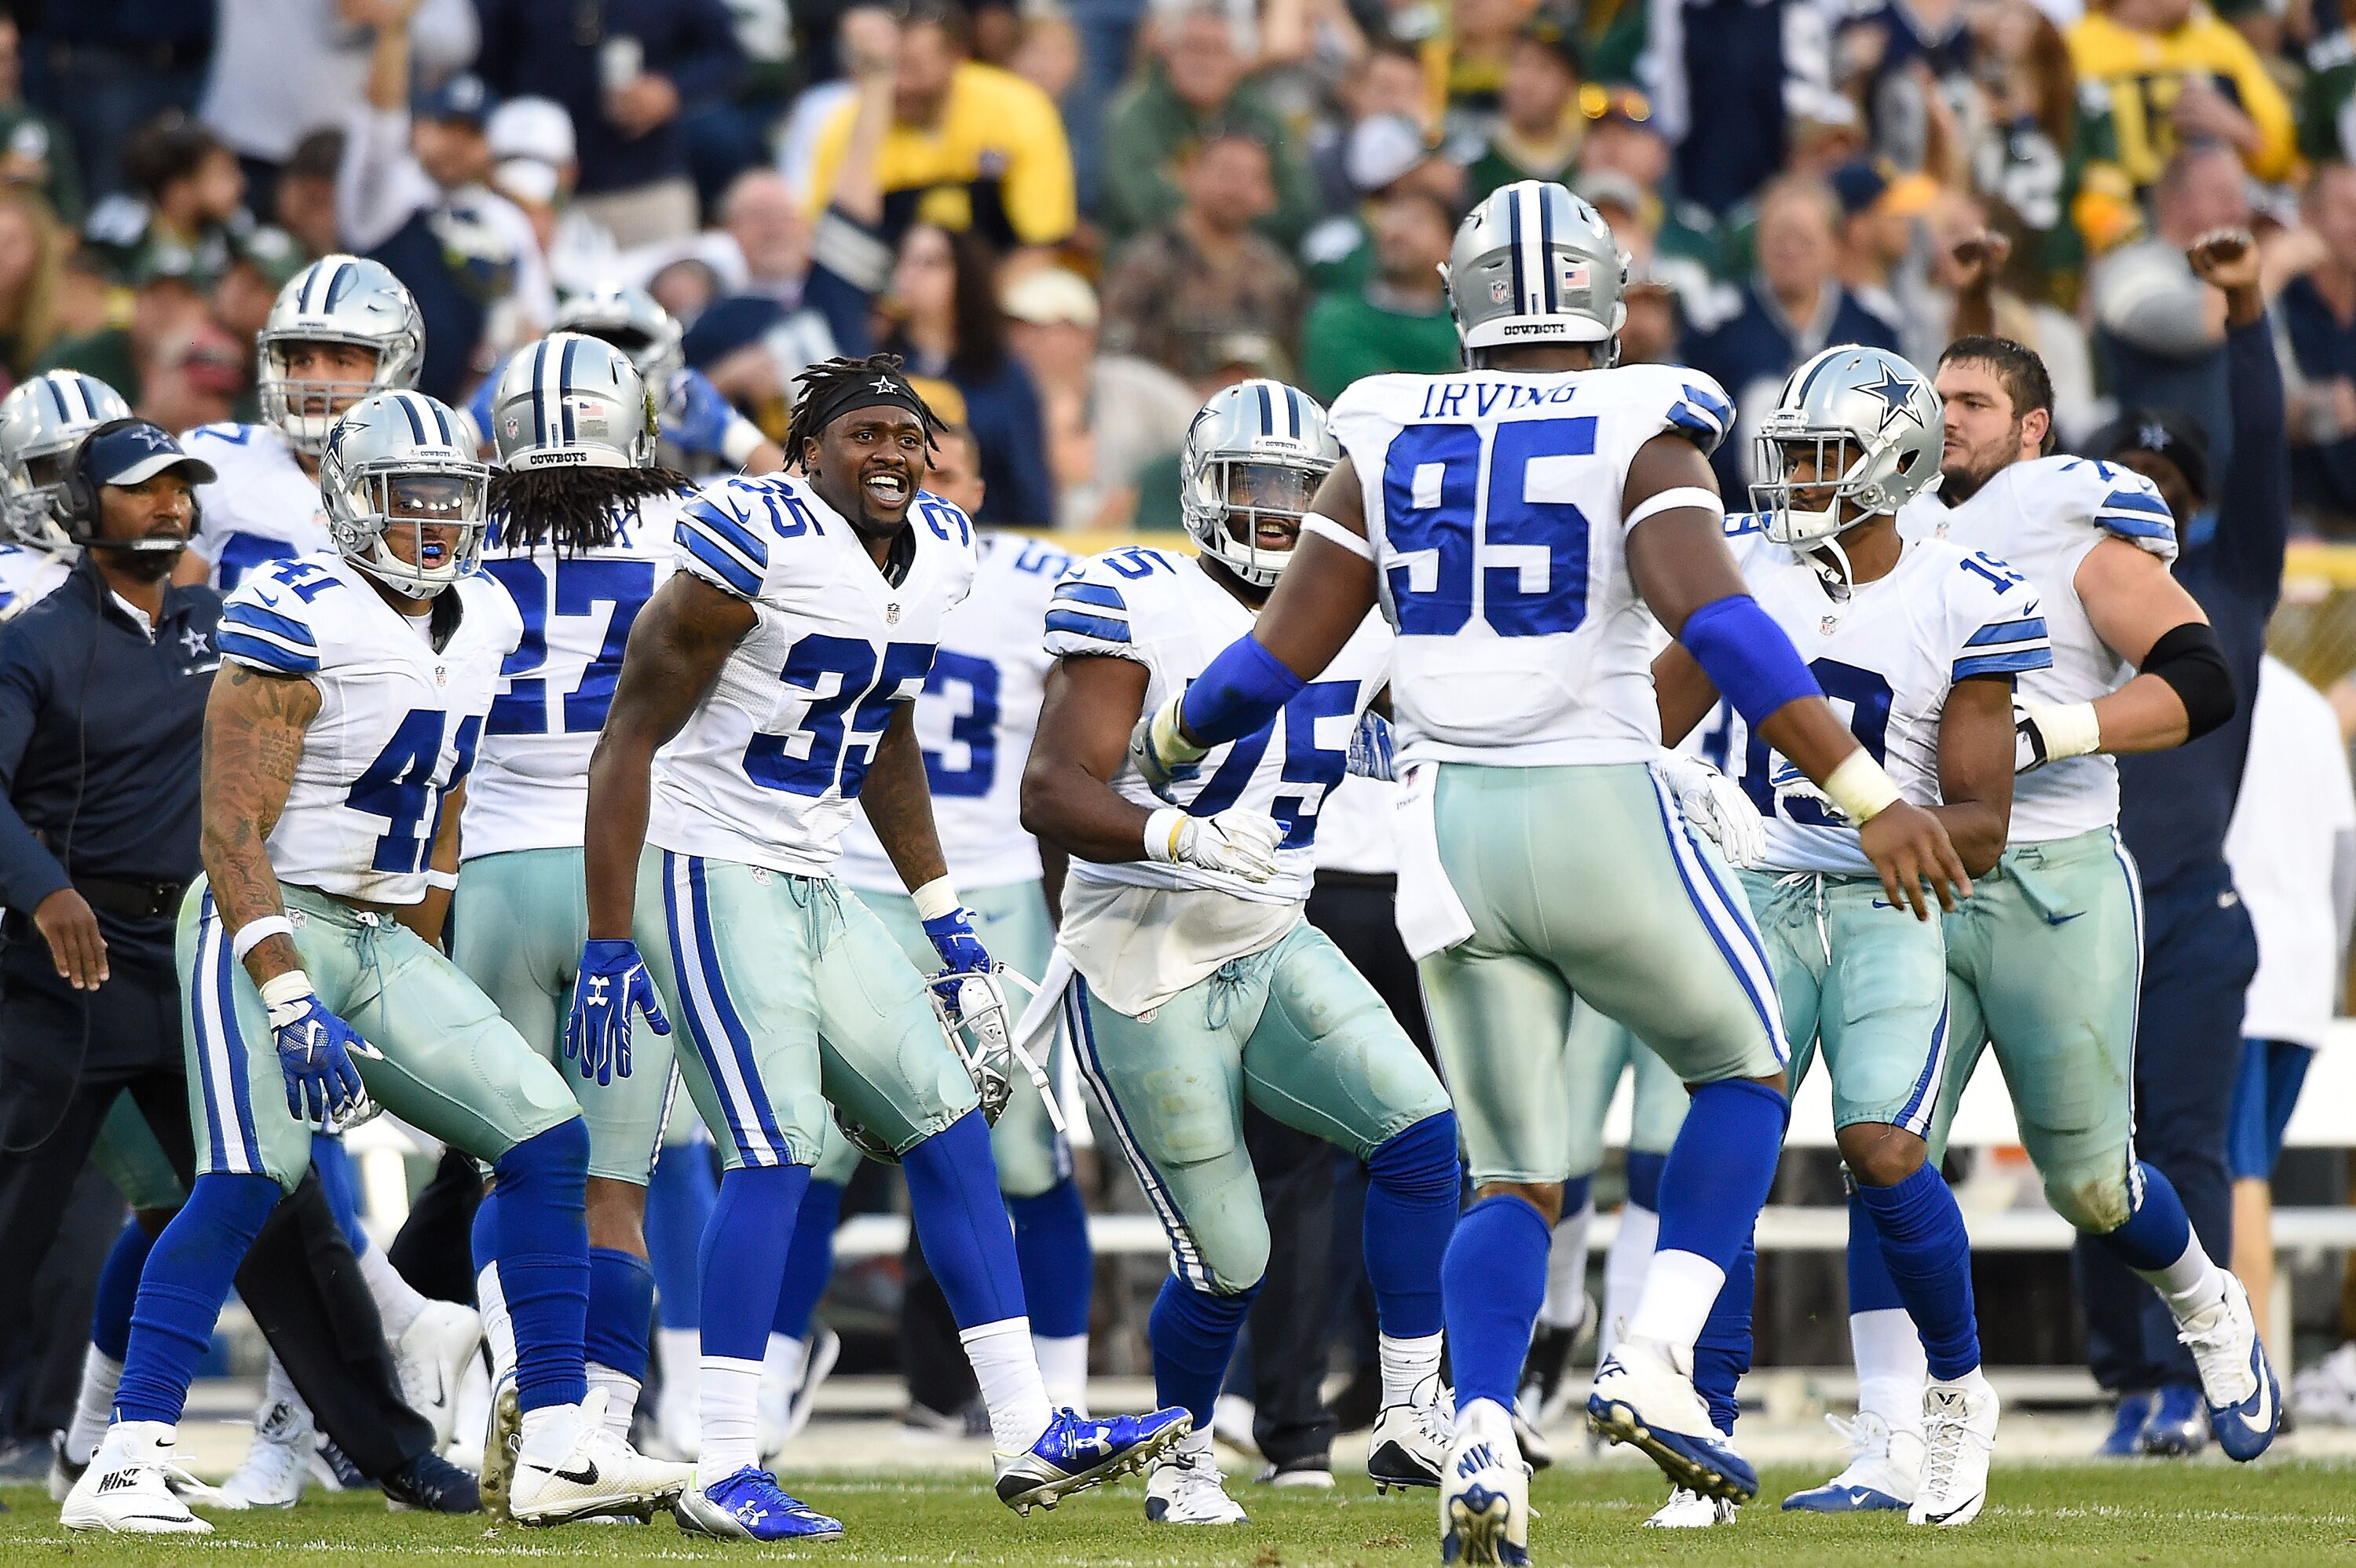 Dallas Cowboys' David Irving: From dismissed to stardom